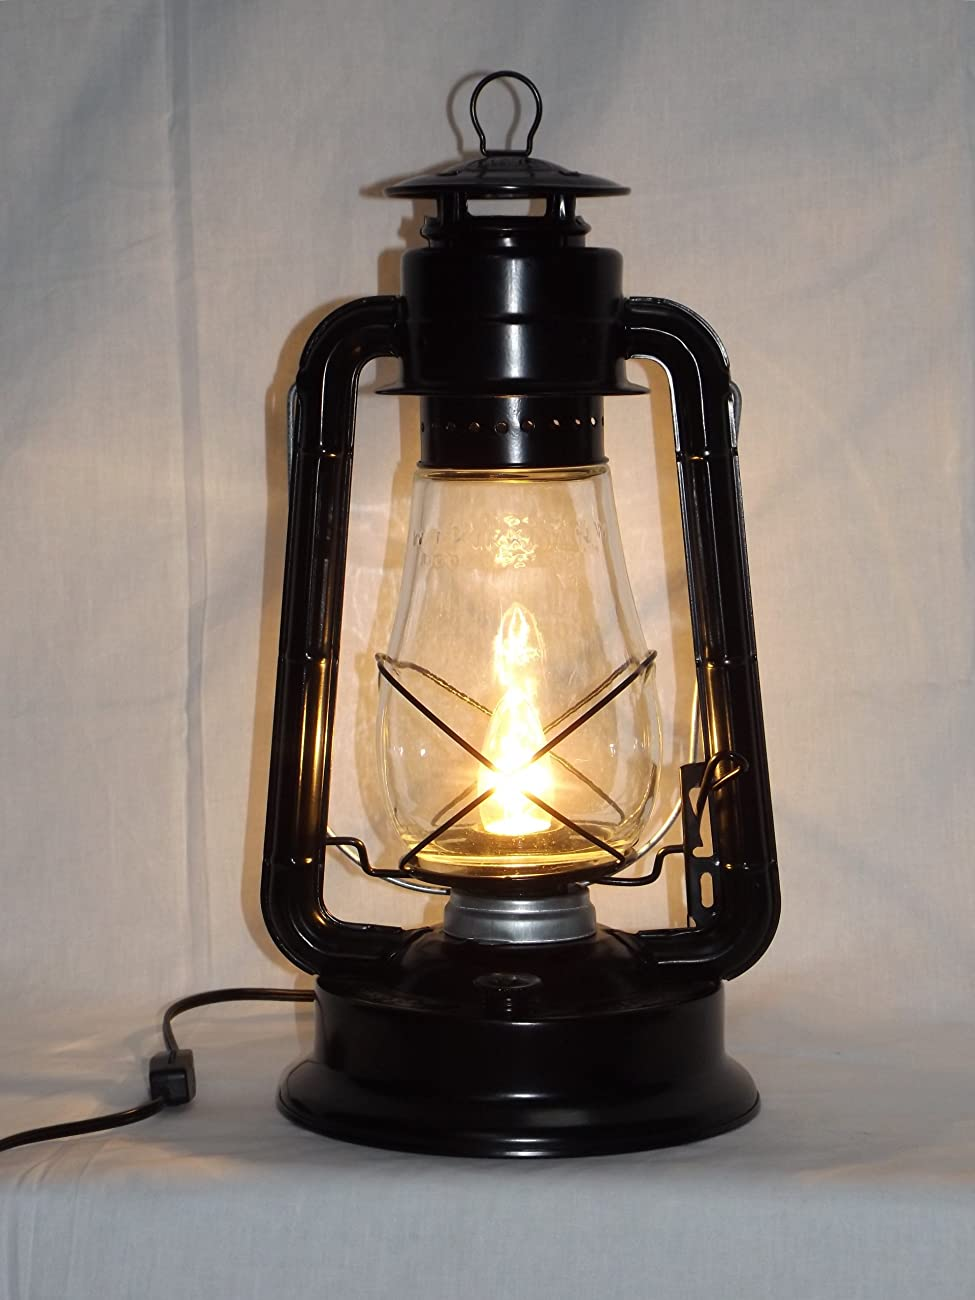 Dietz Blizzard 'Vintage Style' Electric Lantern Table Lamp - Black 0